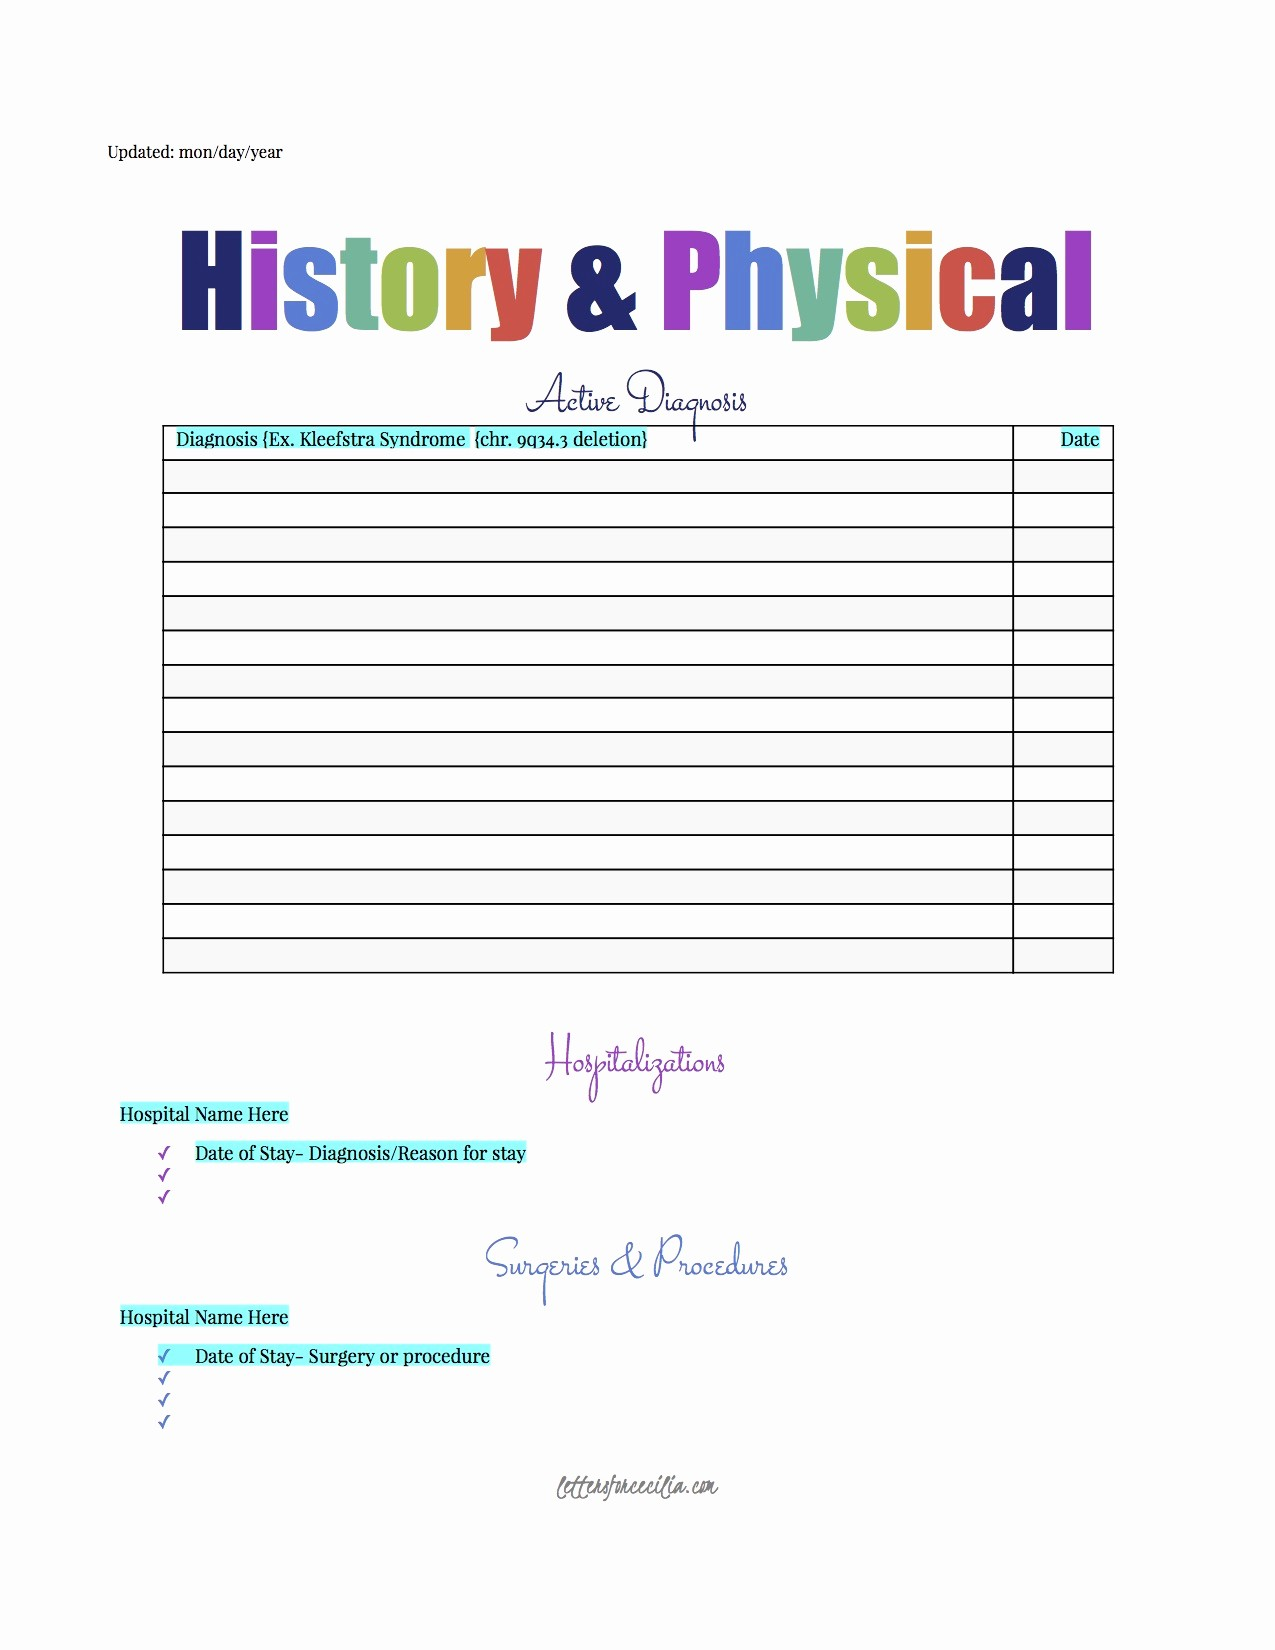 History and Physical Template Free Lovely Printable's